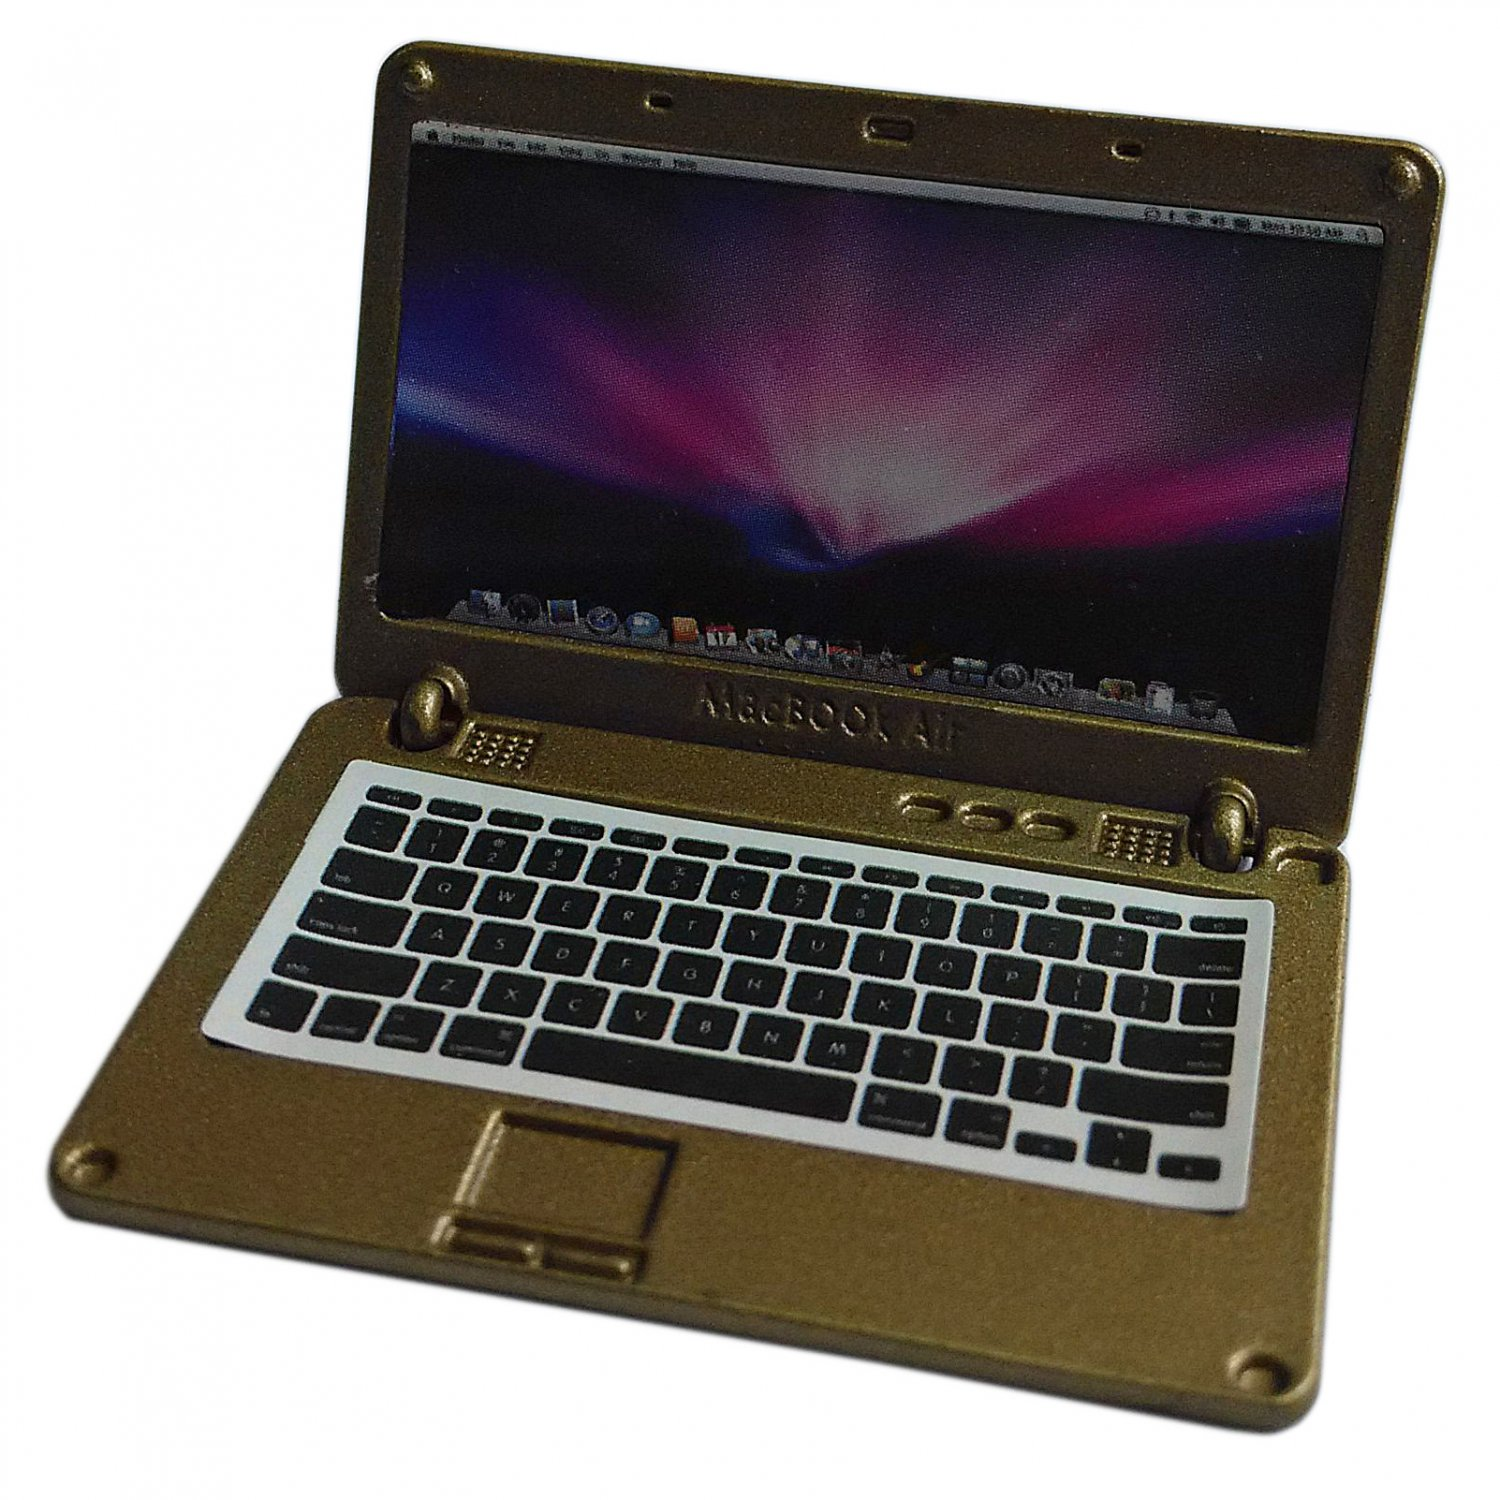 Golden Metal Laptop MacBook 16:10 1/12 Scale Doll's House Dollhouse Miniature #13315